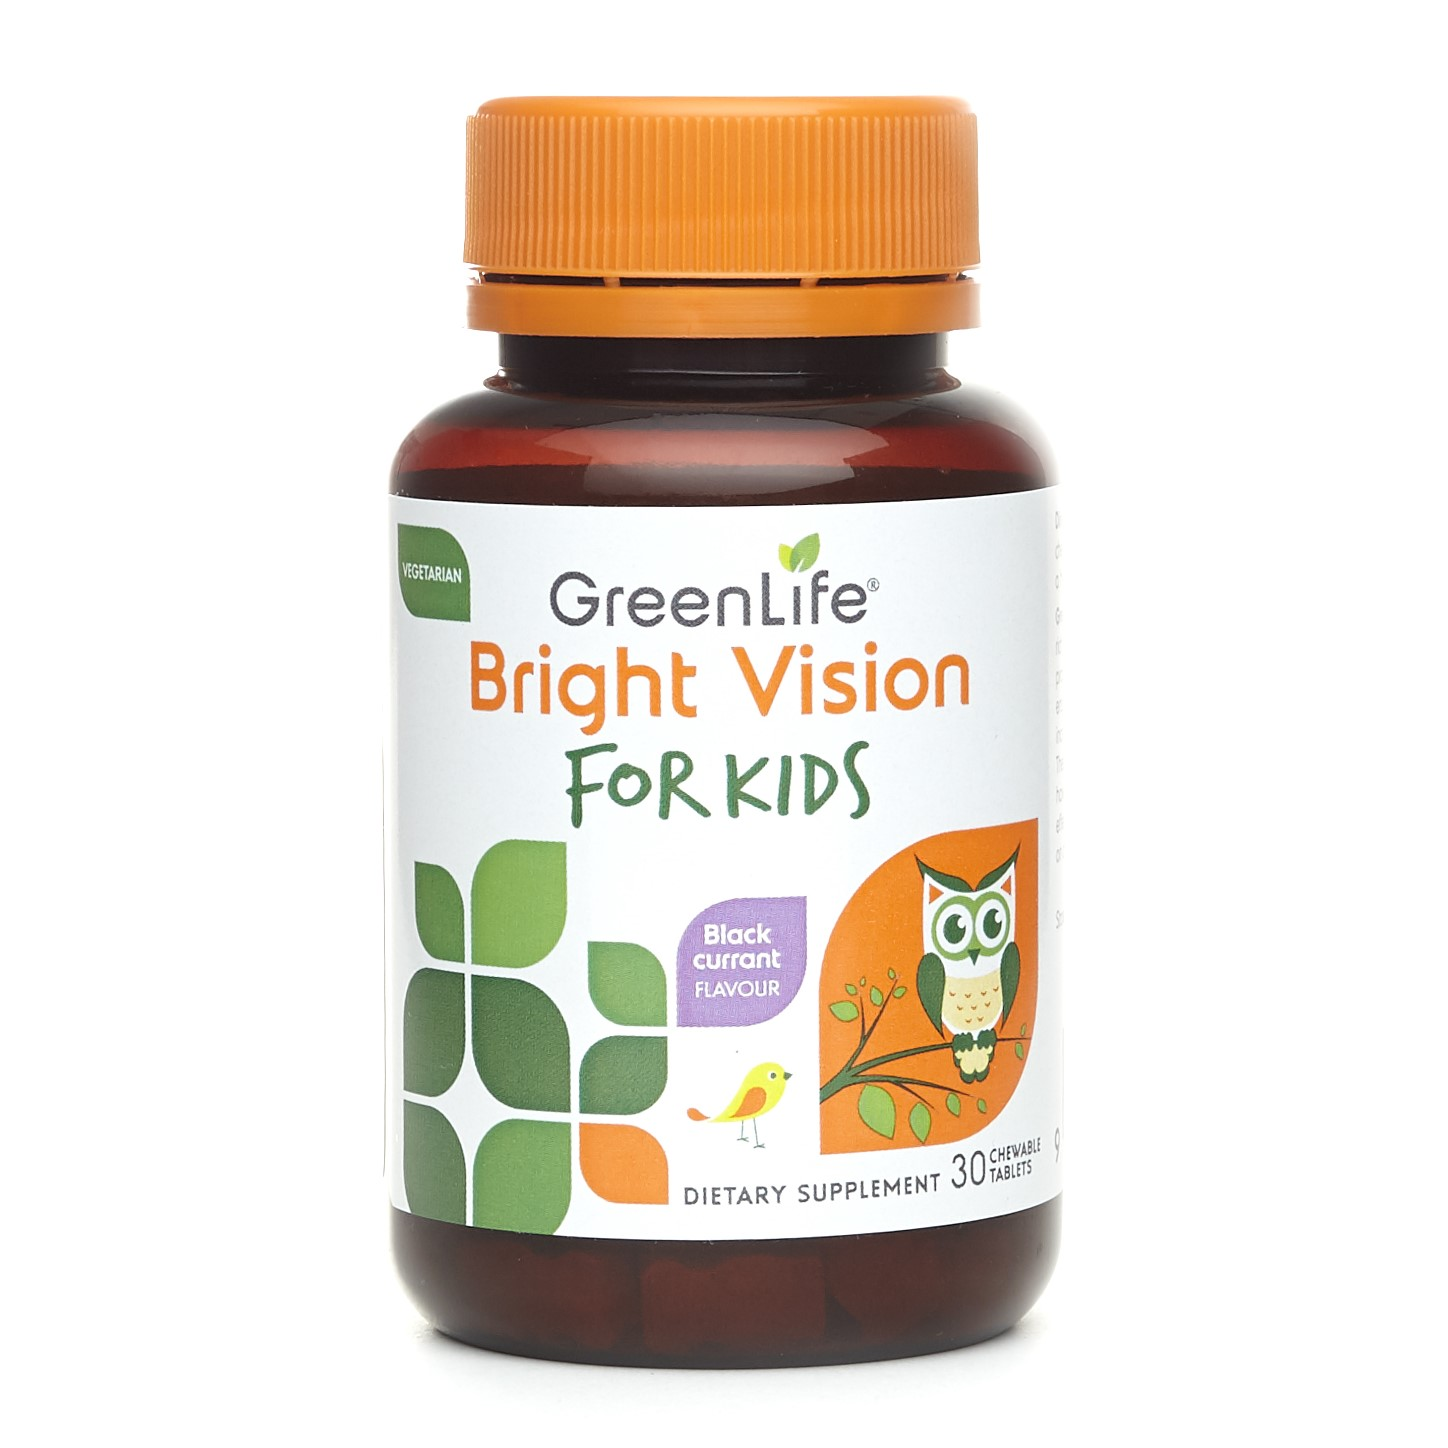 GreenLife Bright Vision for Kids